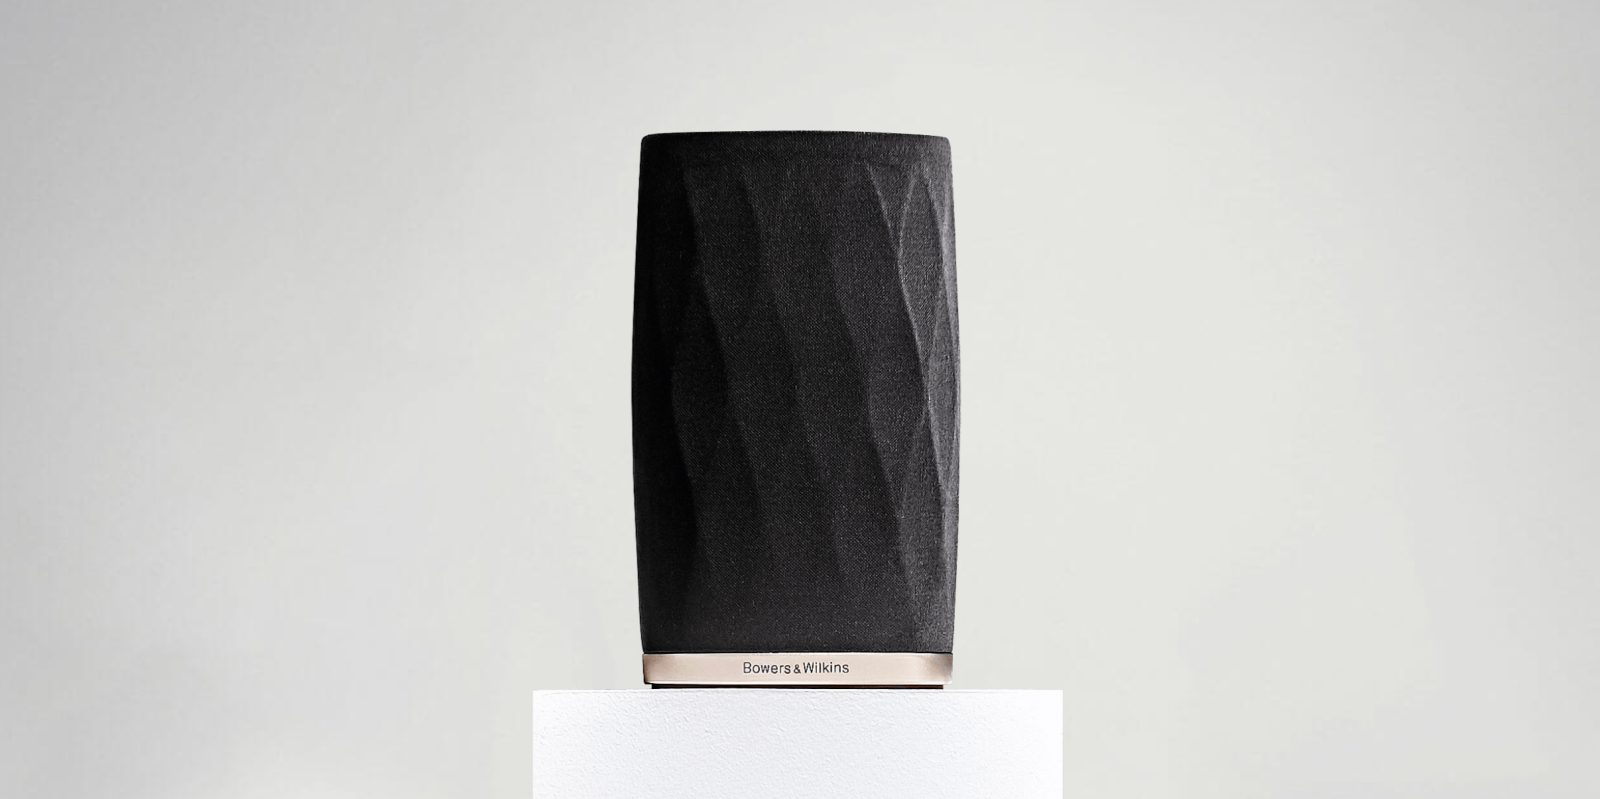 Bowers & Wilkins Formation Flex arrives with AirPlay 2